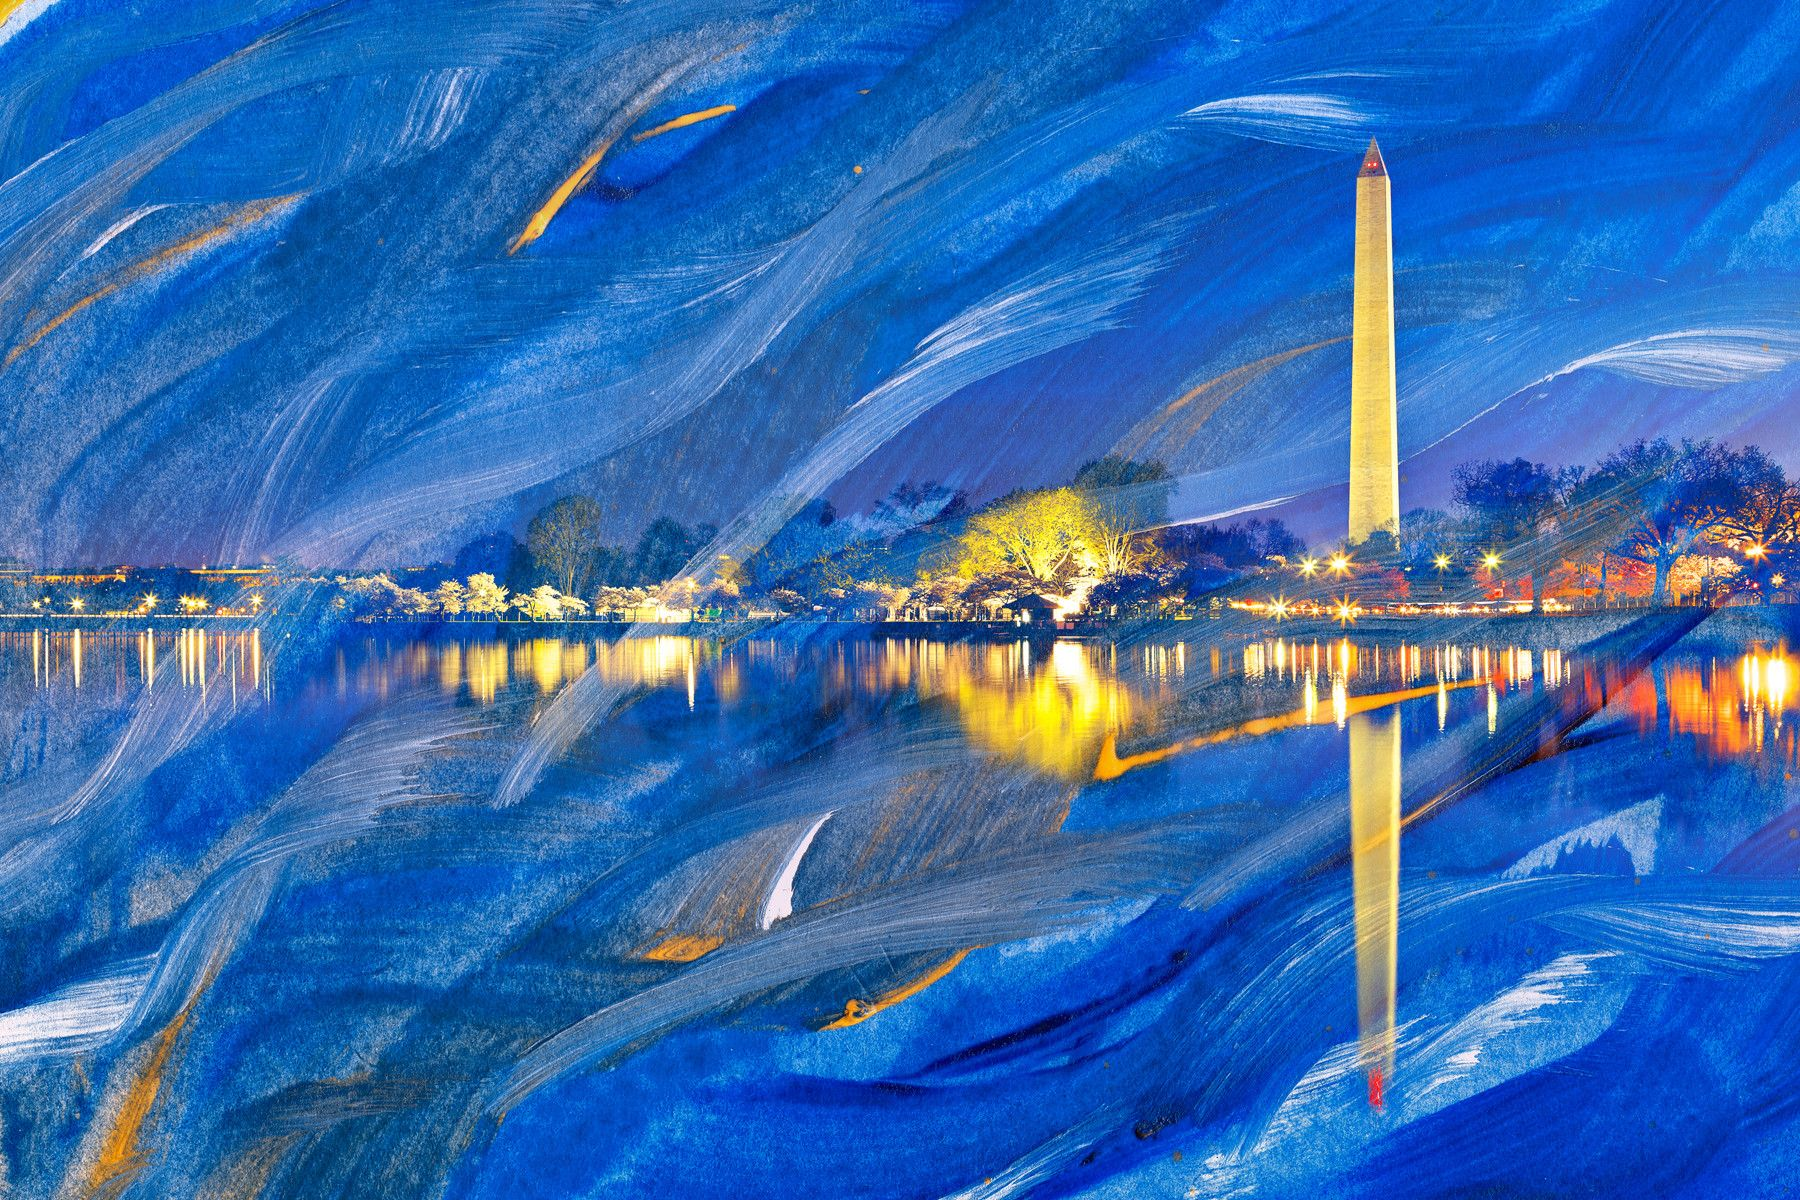 Acrylic-Waves-of-DC-Graphic-Art-wallpaper-wp3602231